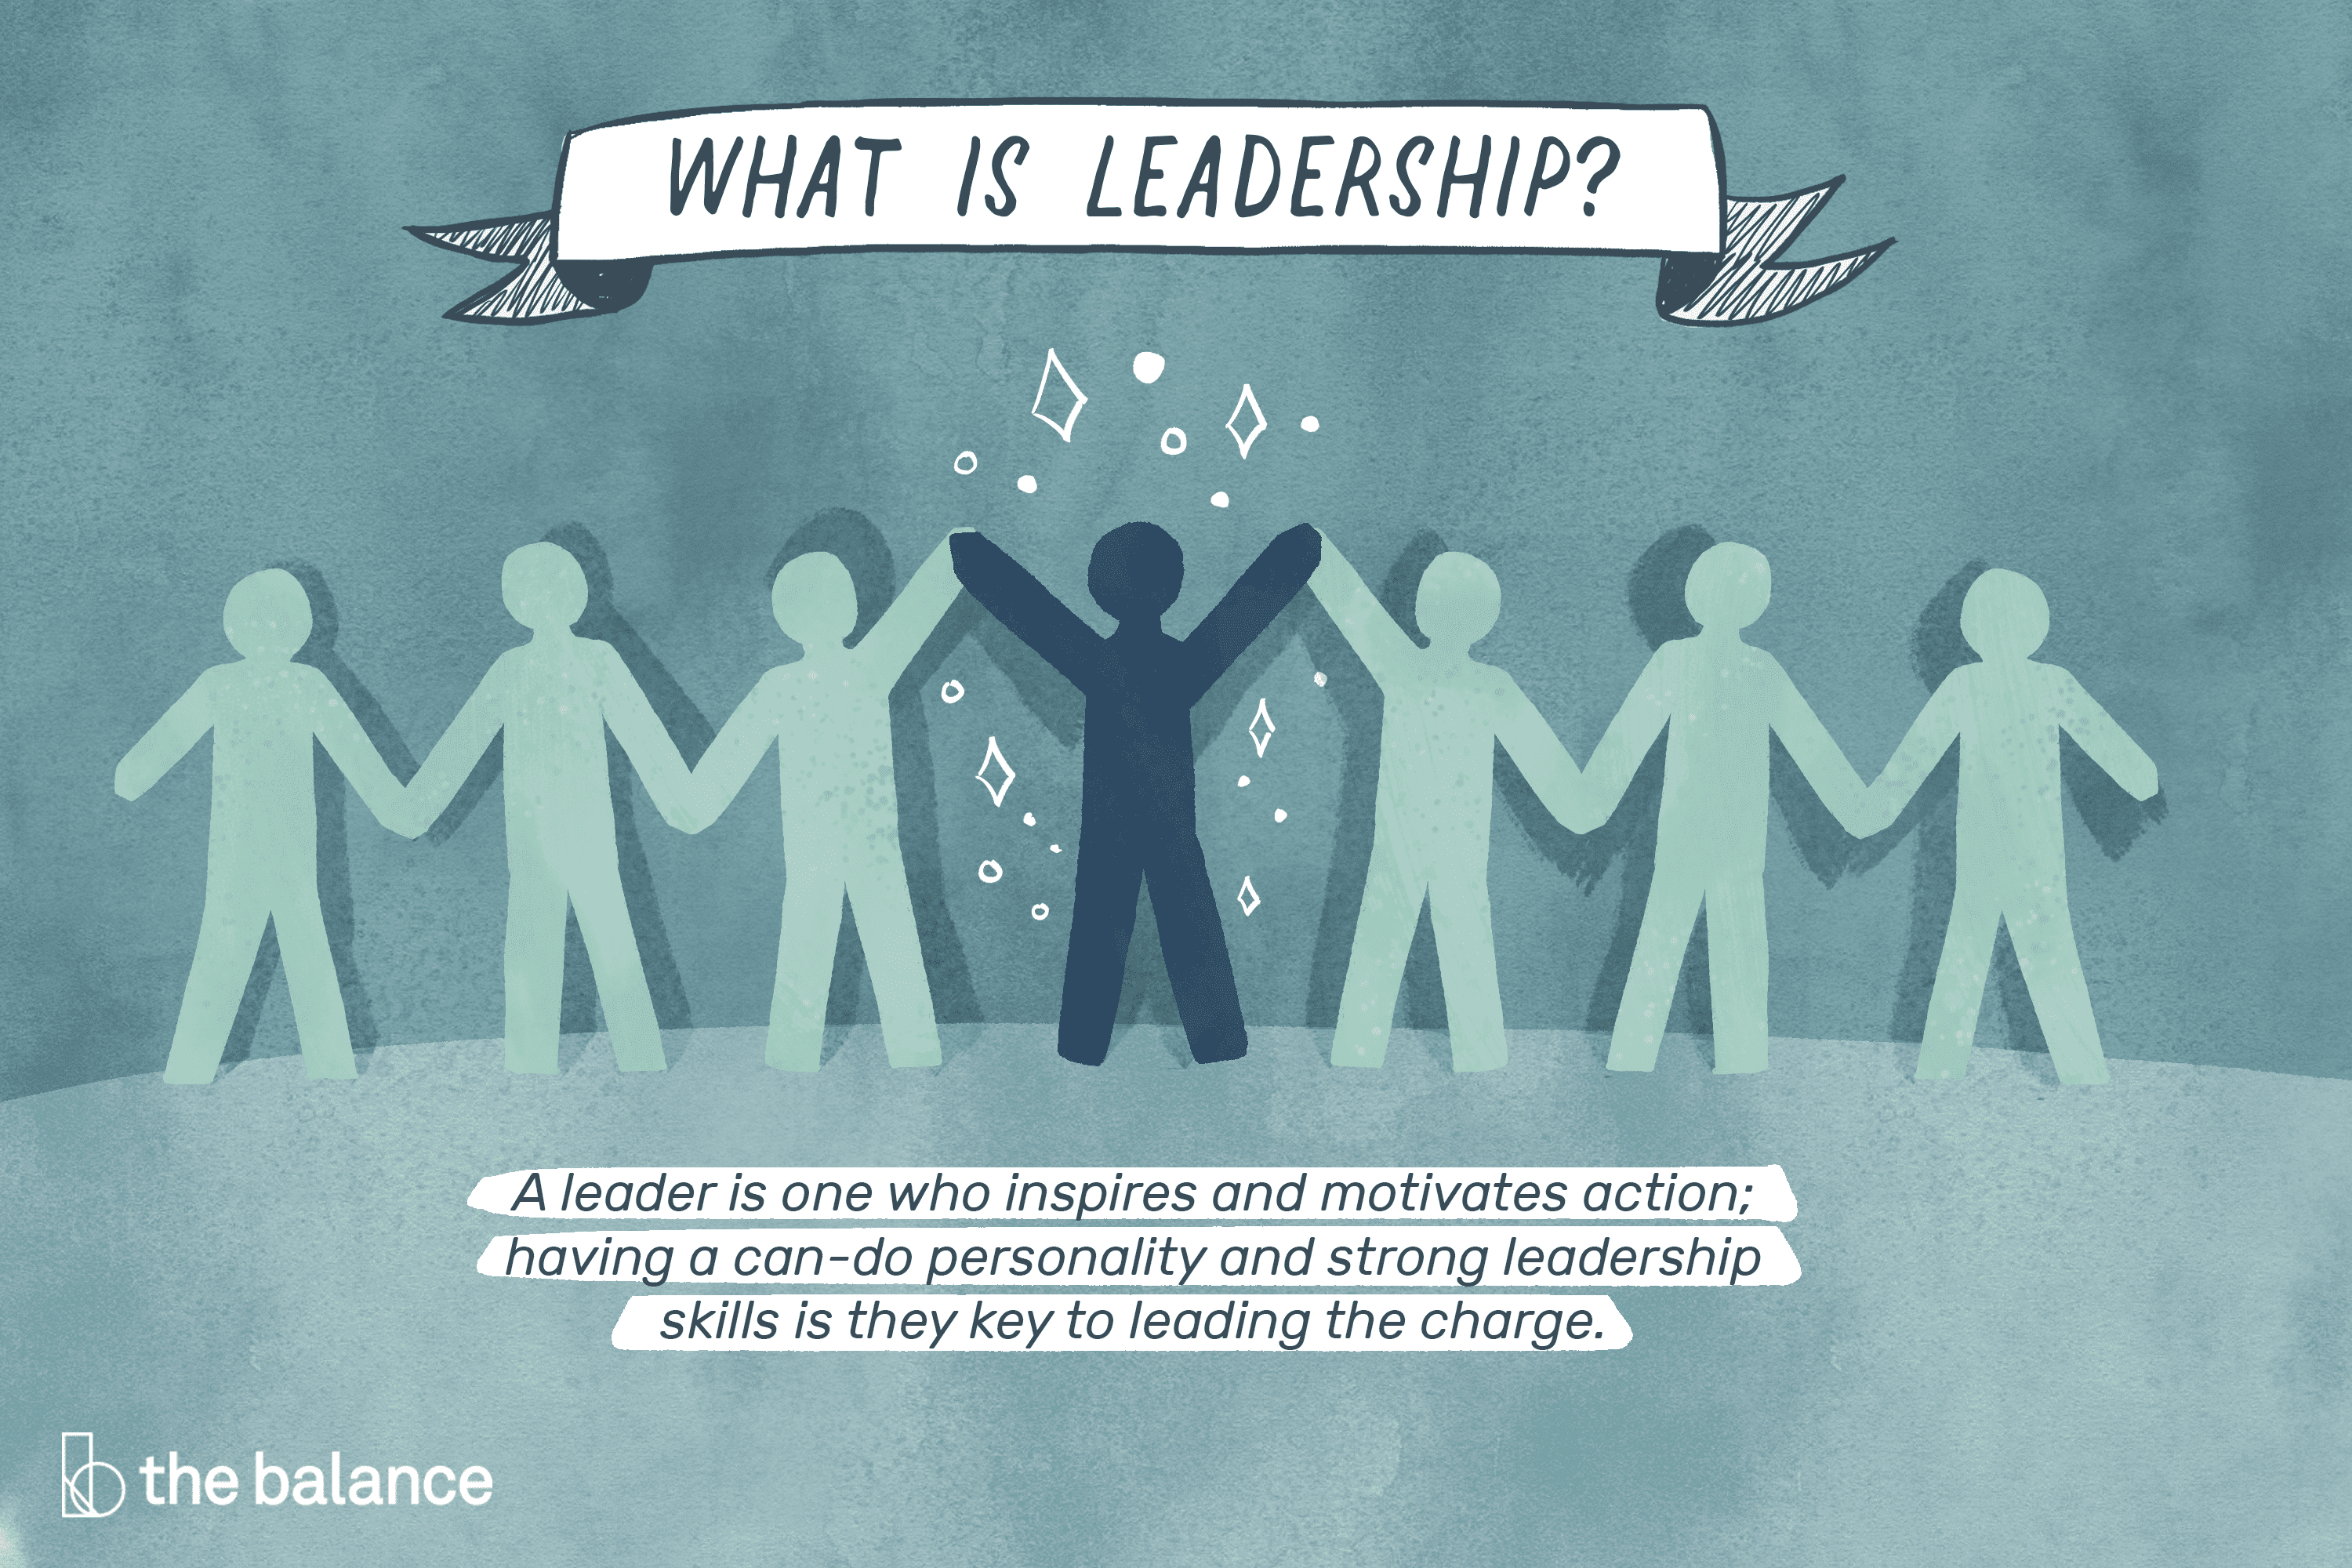 Leadership Definition (What's a Good Leader?)